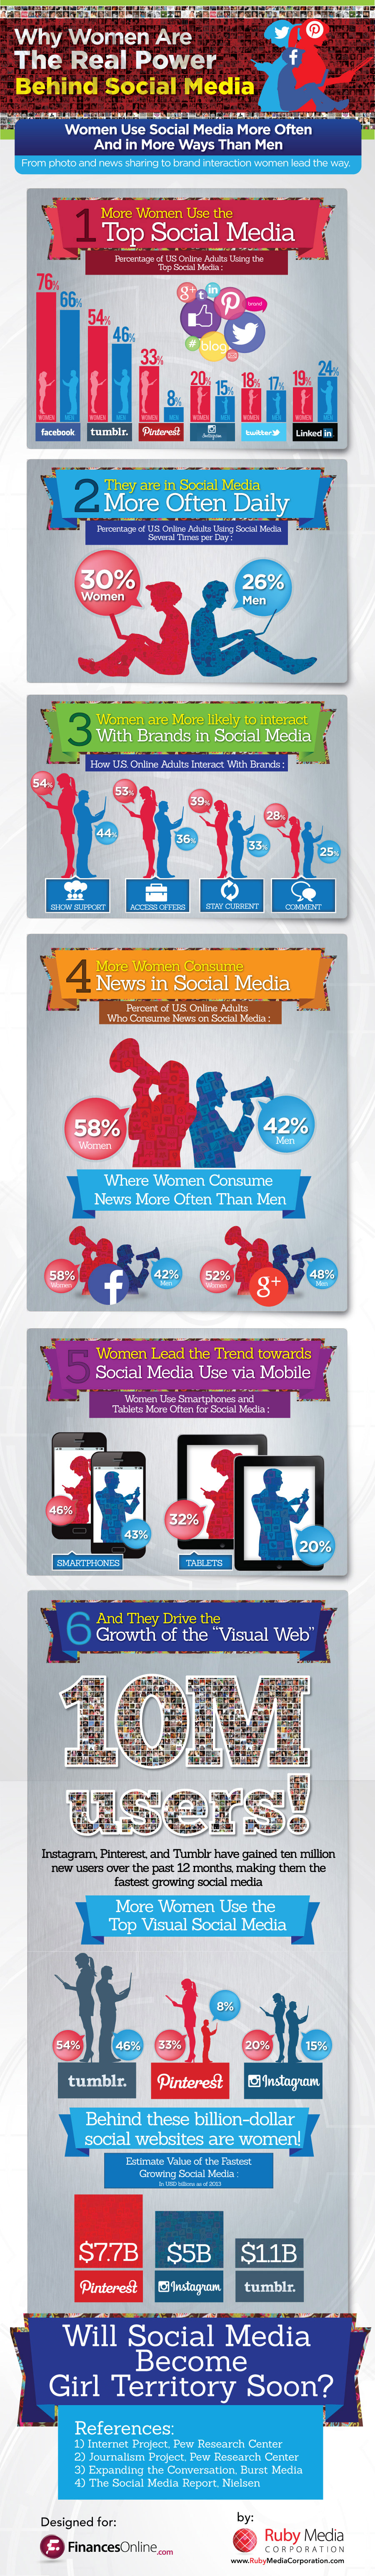 women-dominate-every-social-media-network-except-one-infographic